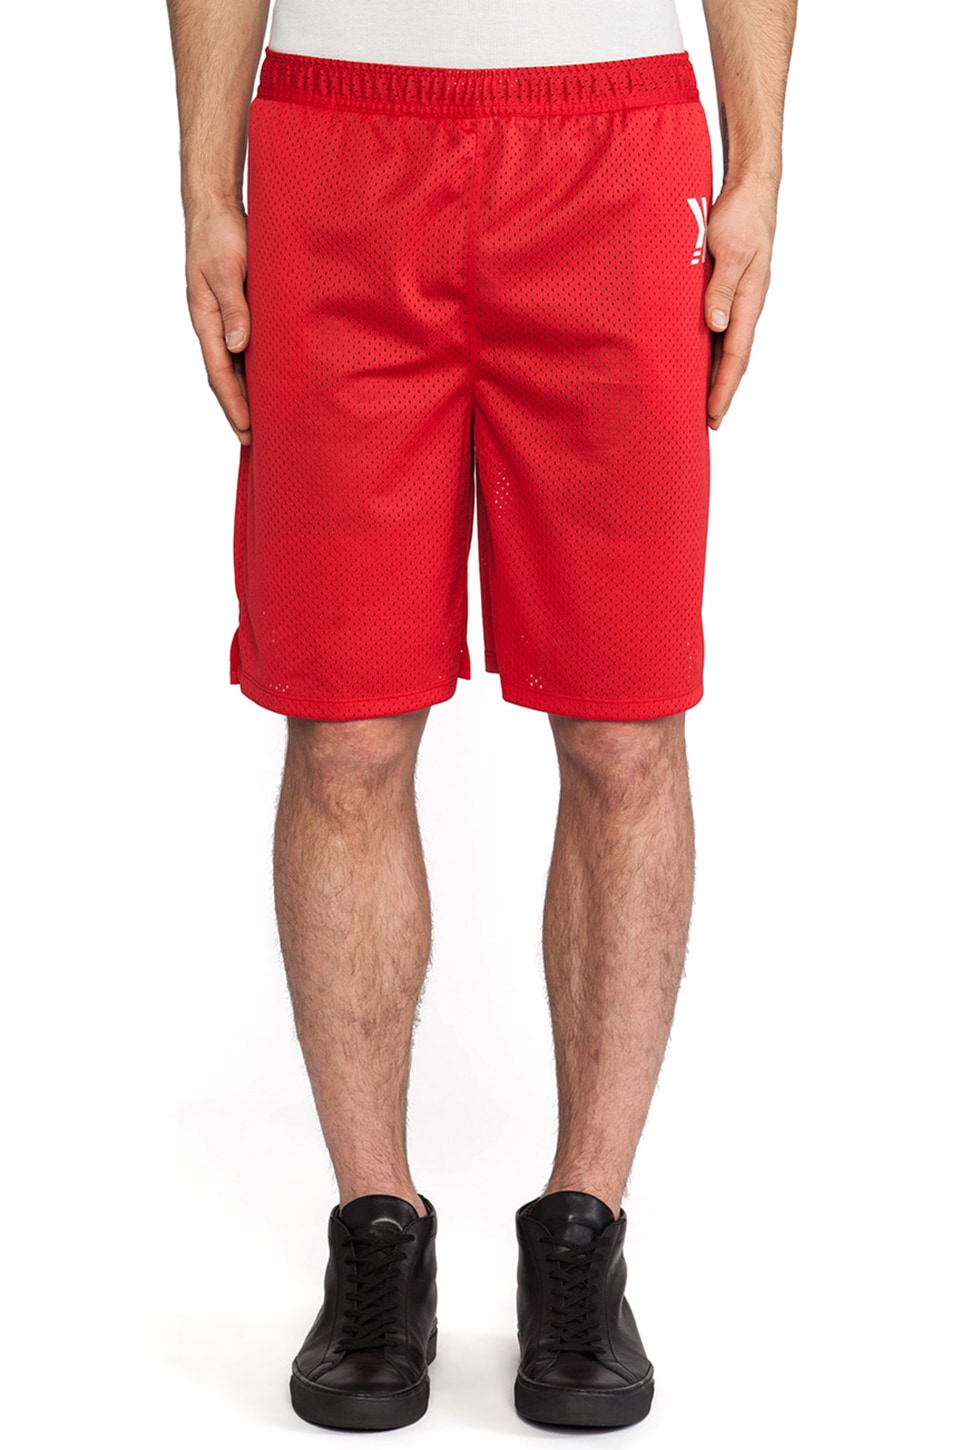 Athletic Recon Gladiator Shorts in Red